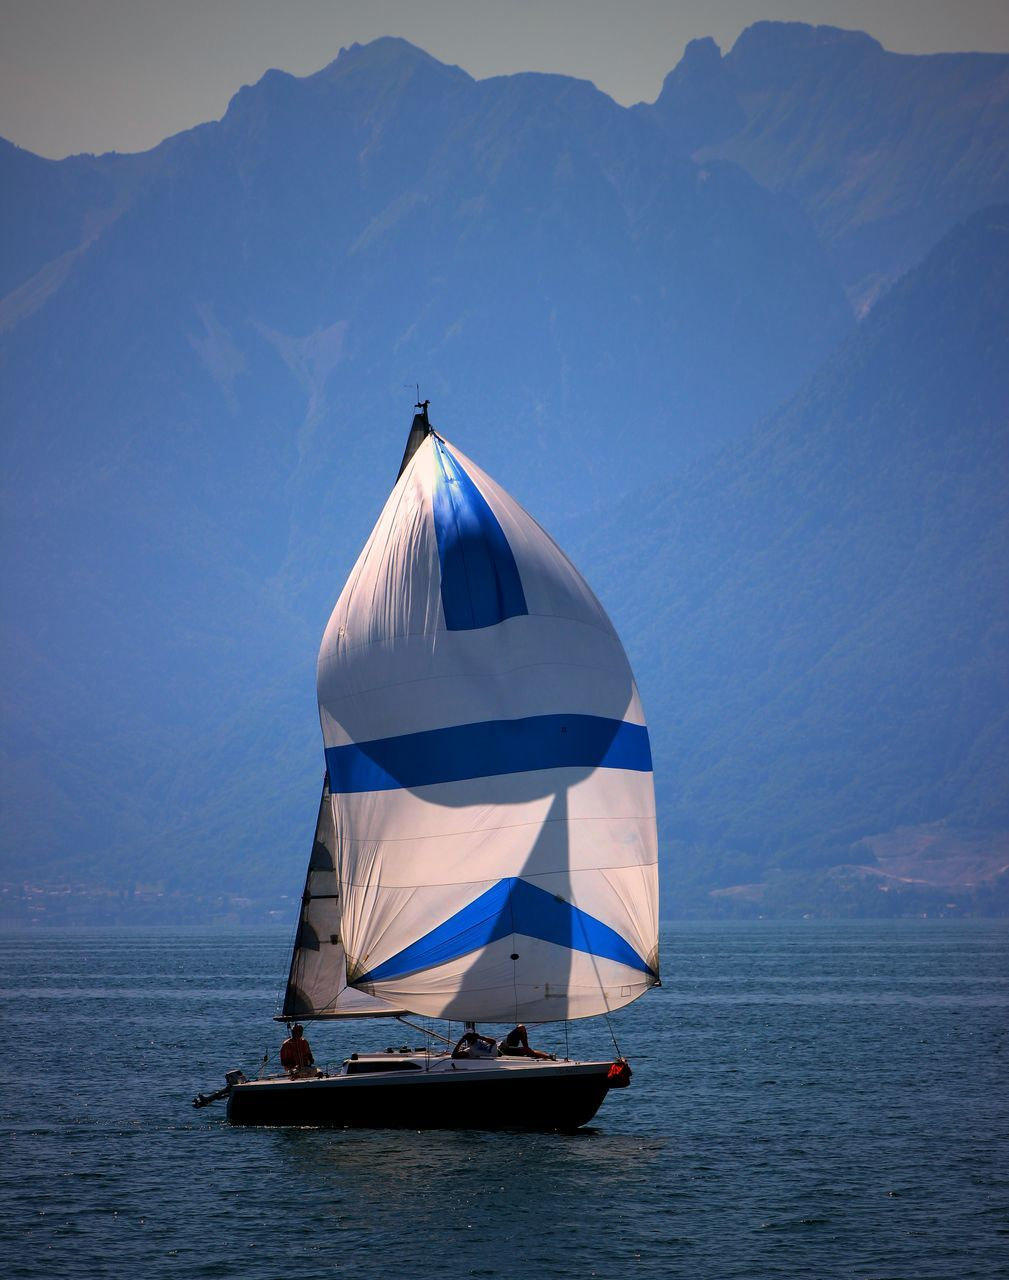 mountain, sea, nature, scenics, day, water, sky, beauty in nature, tranquility, outdoors, nautical vessel, no people, mountain range, horizon over water, sailing